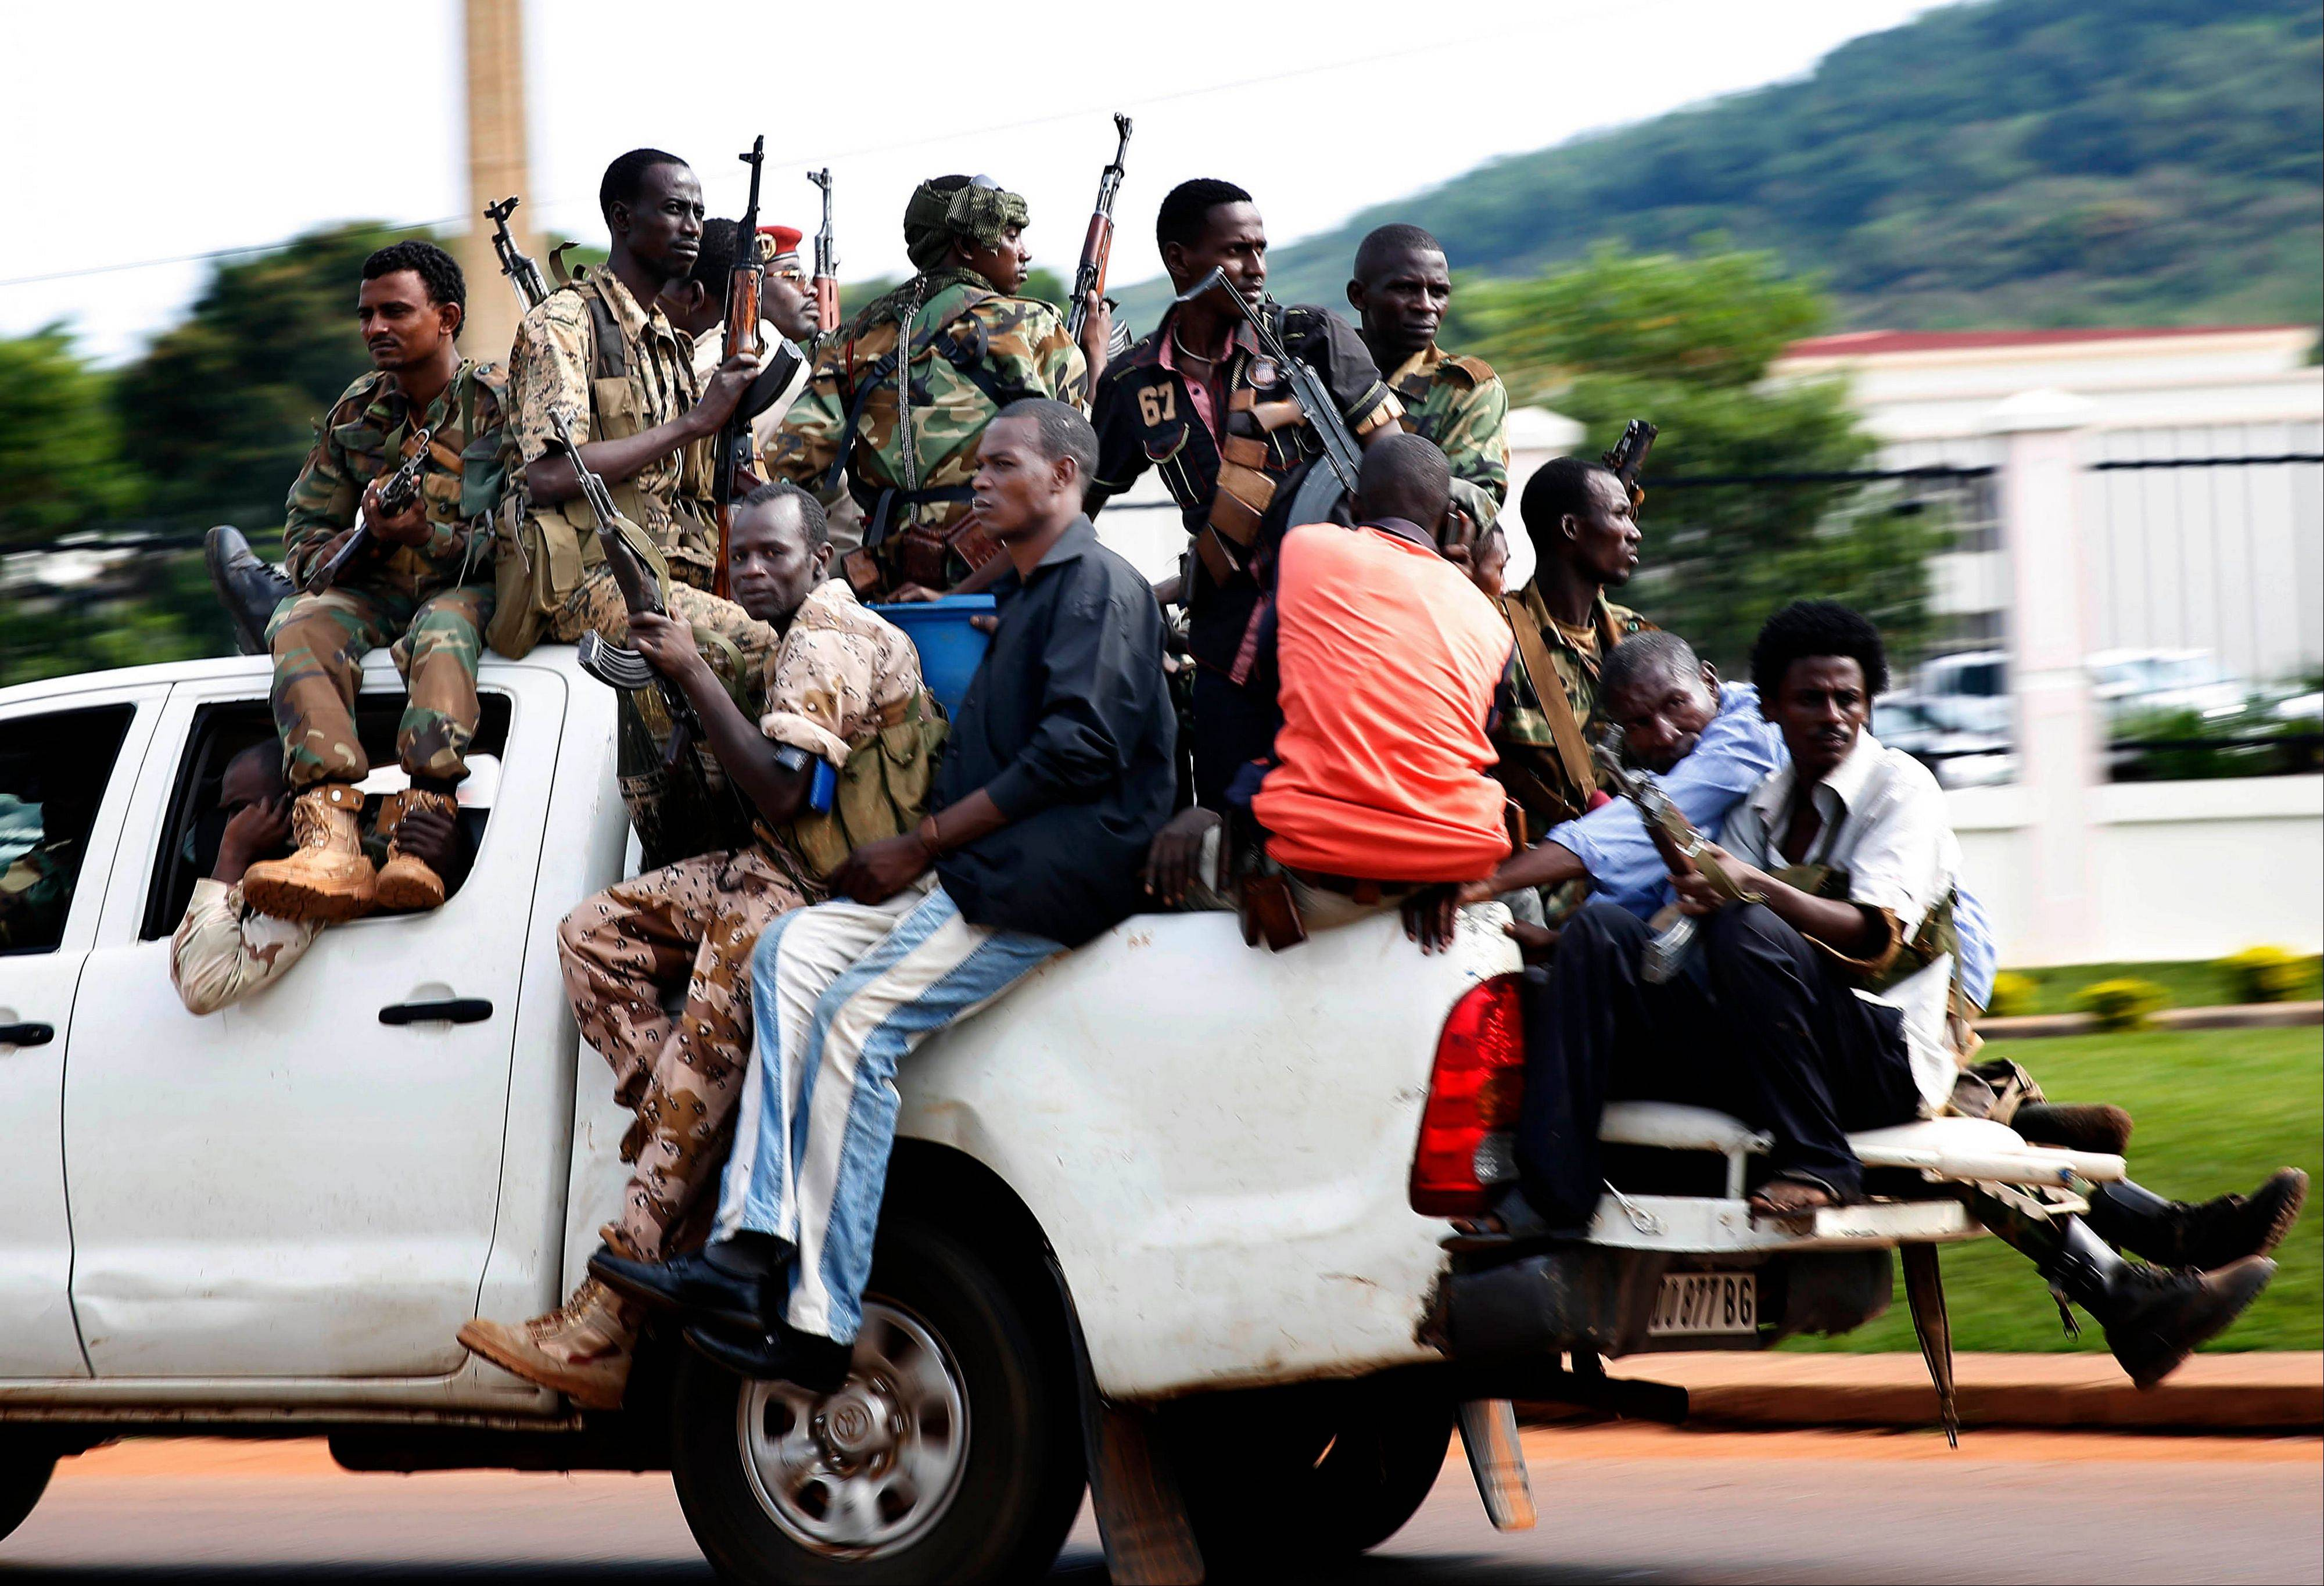 Seleka soldiers race through Bangui, Central African Republic, Thursday, as gunfire and mortar rounds erupt in the town.